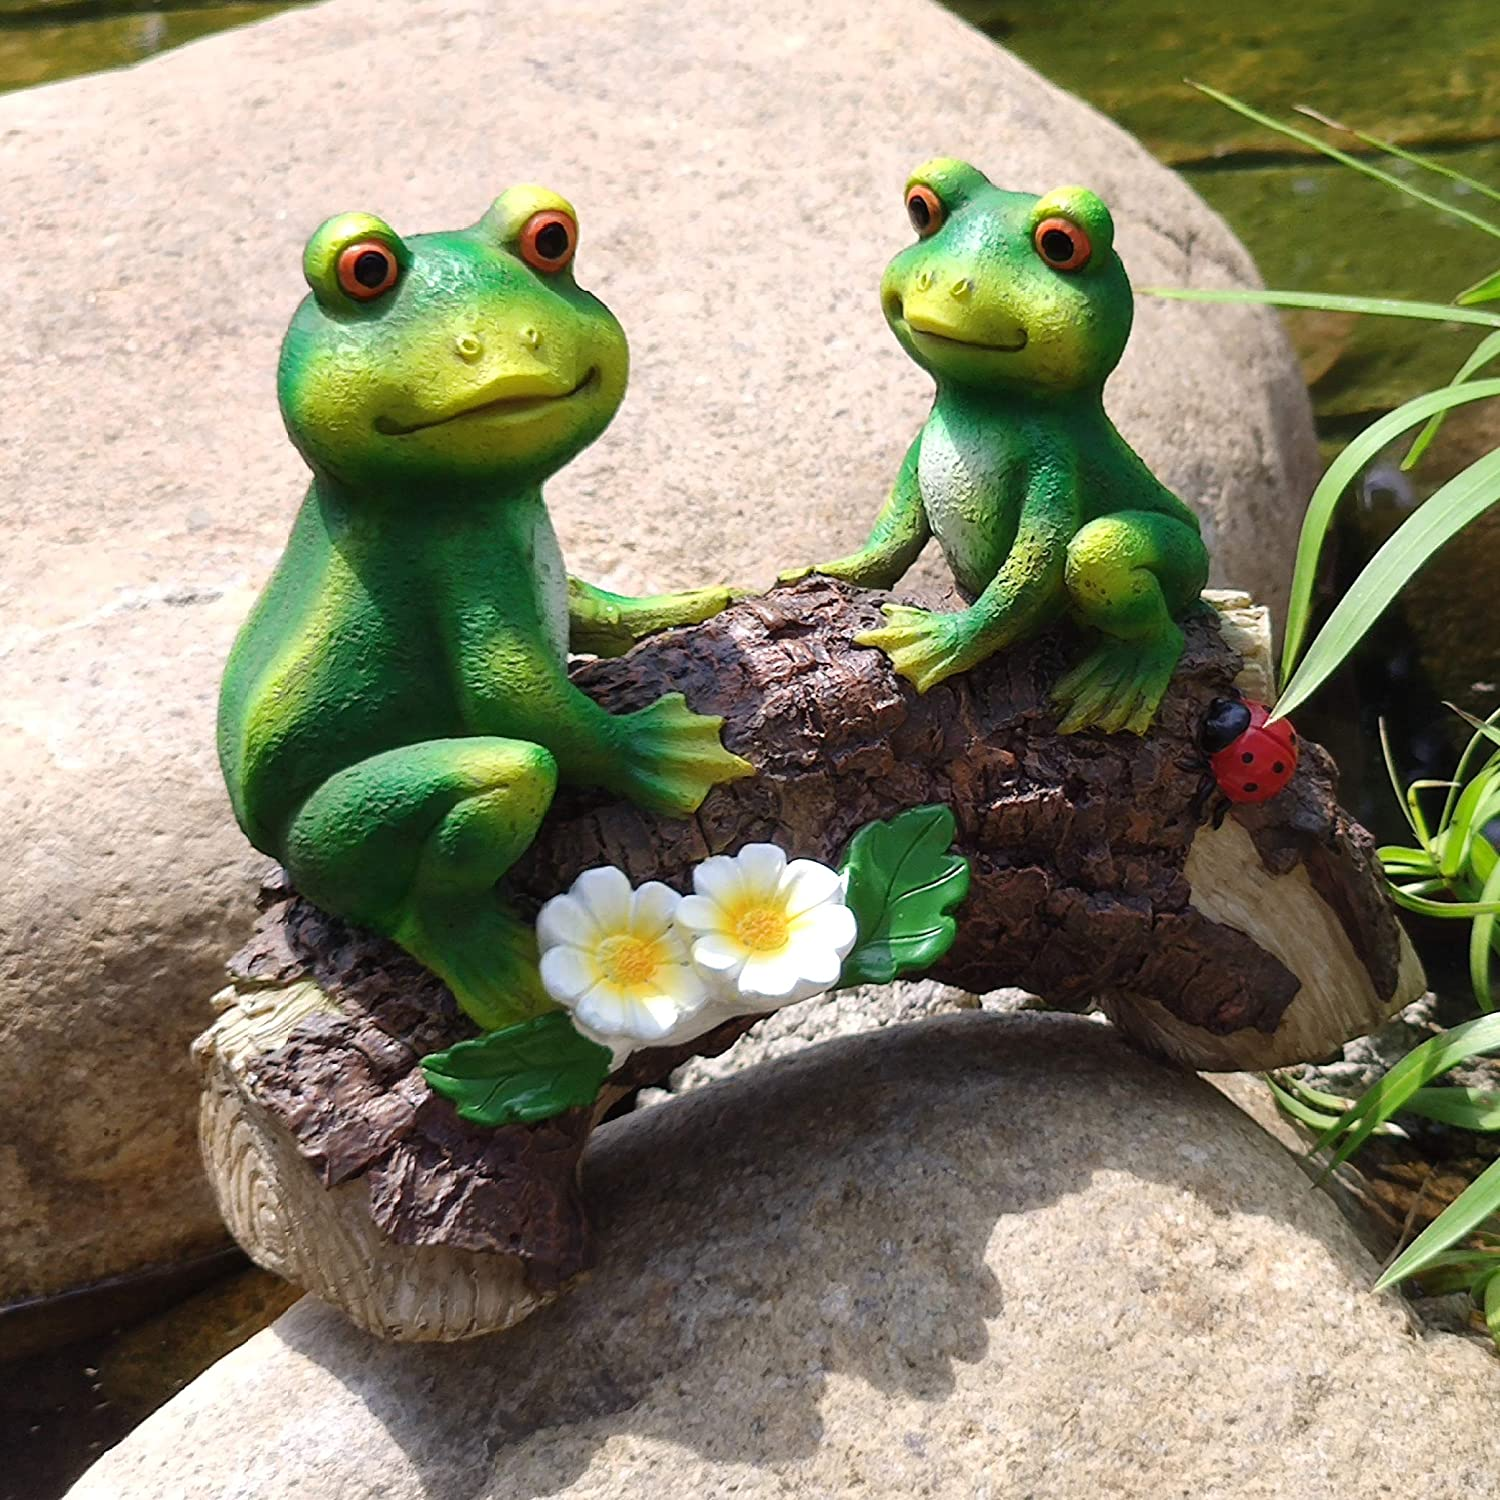 """FANN Mr. and Mrs. Frog on Wood Bridge Statue for Garden Decoration Patio, Yard Pond, Lawn Art Ornament Outdoor Resin 8.5"""" x 7"""""""